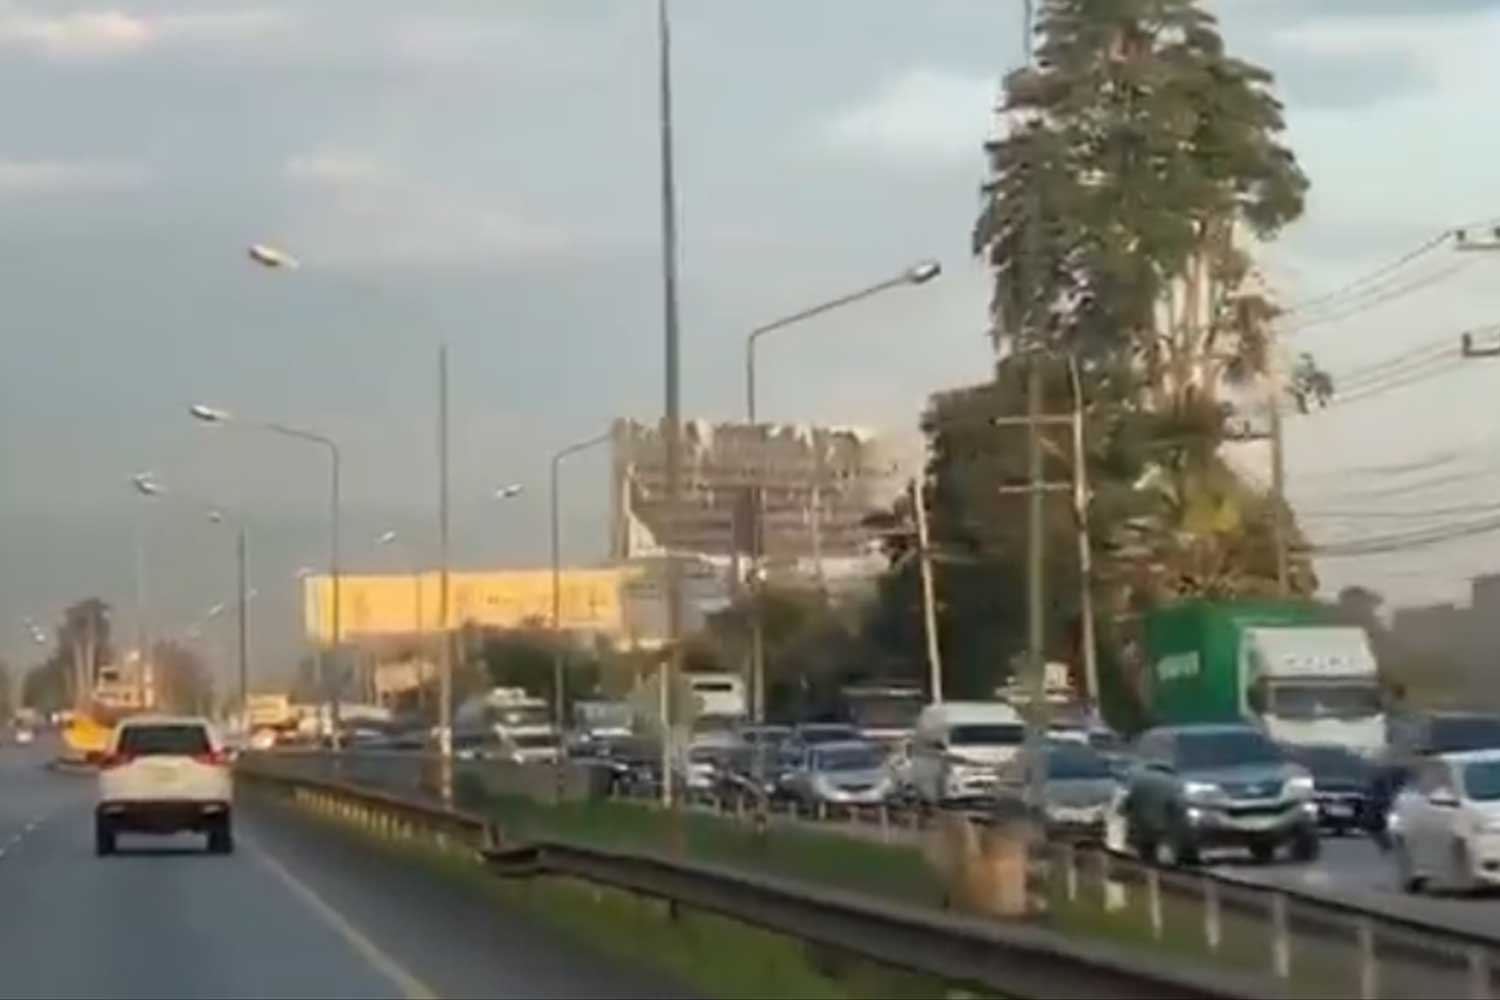 Traffic on inbound lanes of the Mittraphap Highway in Nakhon Ratchasima is heavy as drivers head to the Northeast on Saturday for a four-day weekend. (Photo: Prasit Tangprasert)